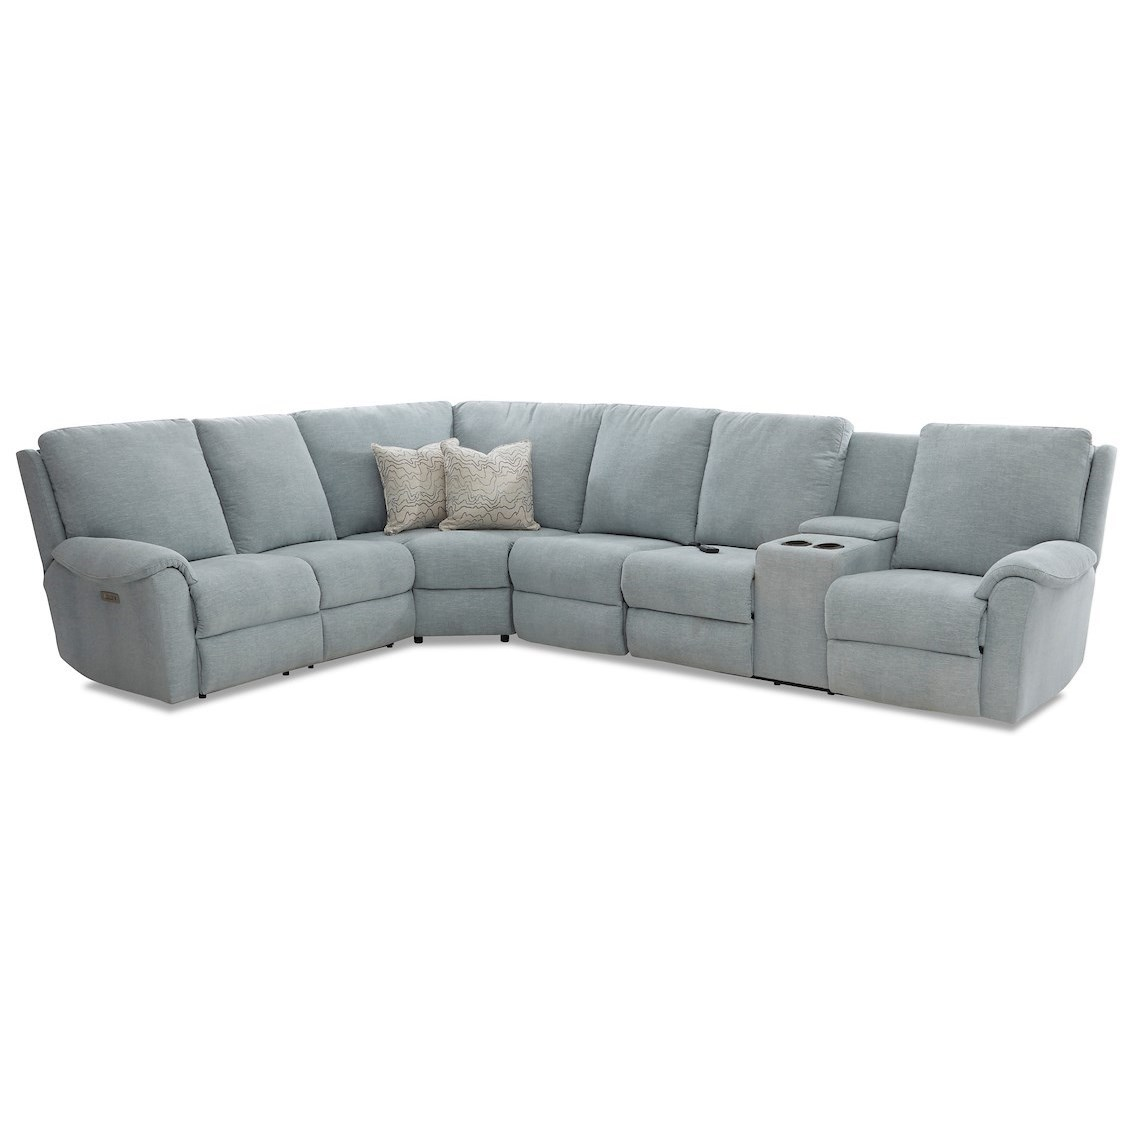 Davos Pwr Recline Sectional w/RAF Cnsl/Headrest/Lu by Klaussner at Johnny Janosik